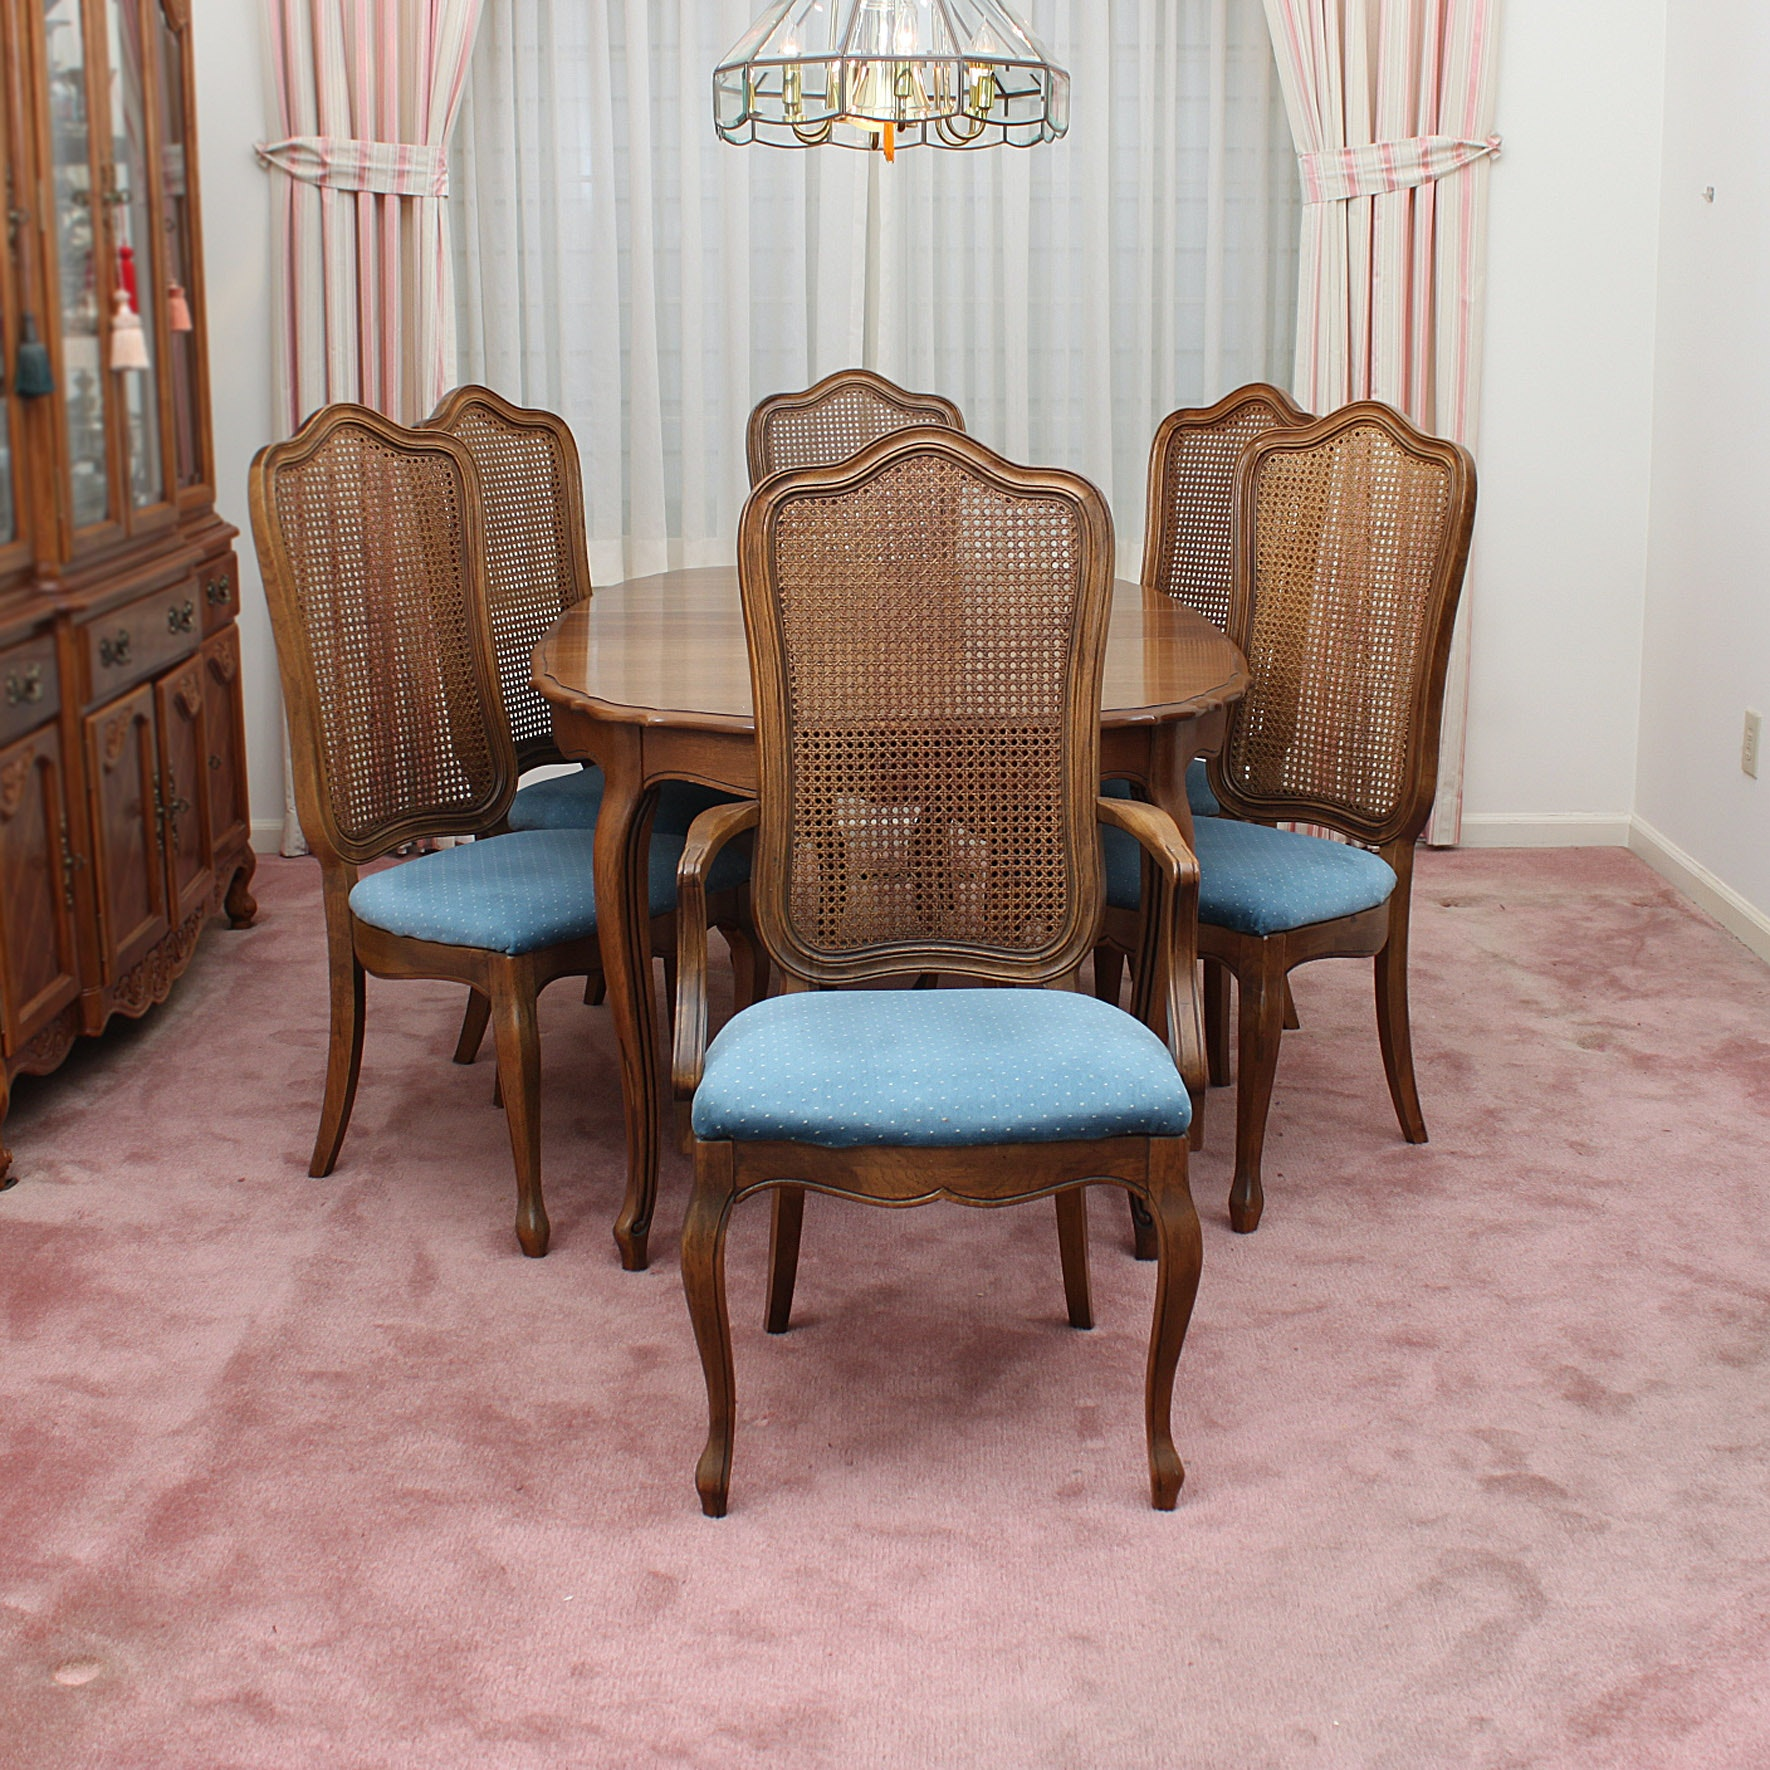 vintage french provincial style dining set by thomasville ebth vintage french provincial style dining set by thomasville